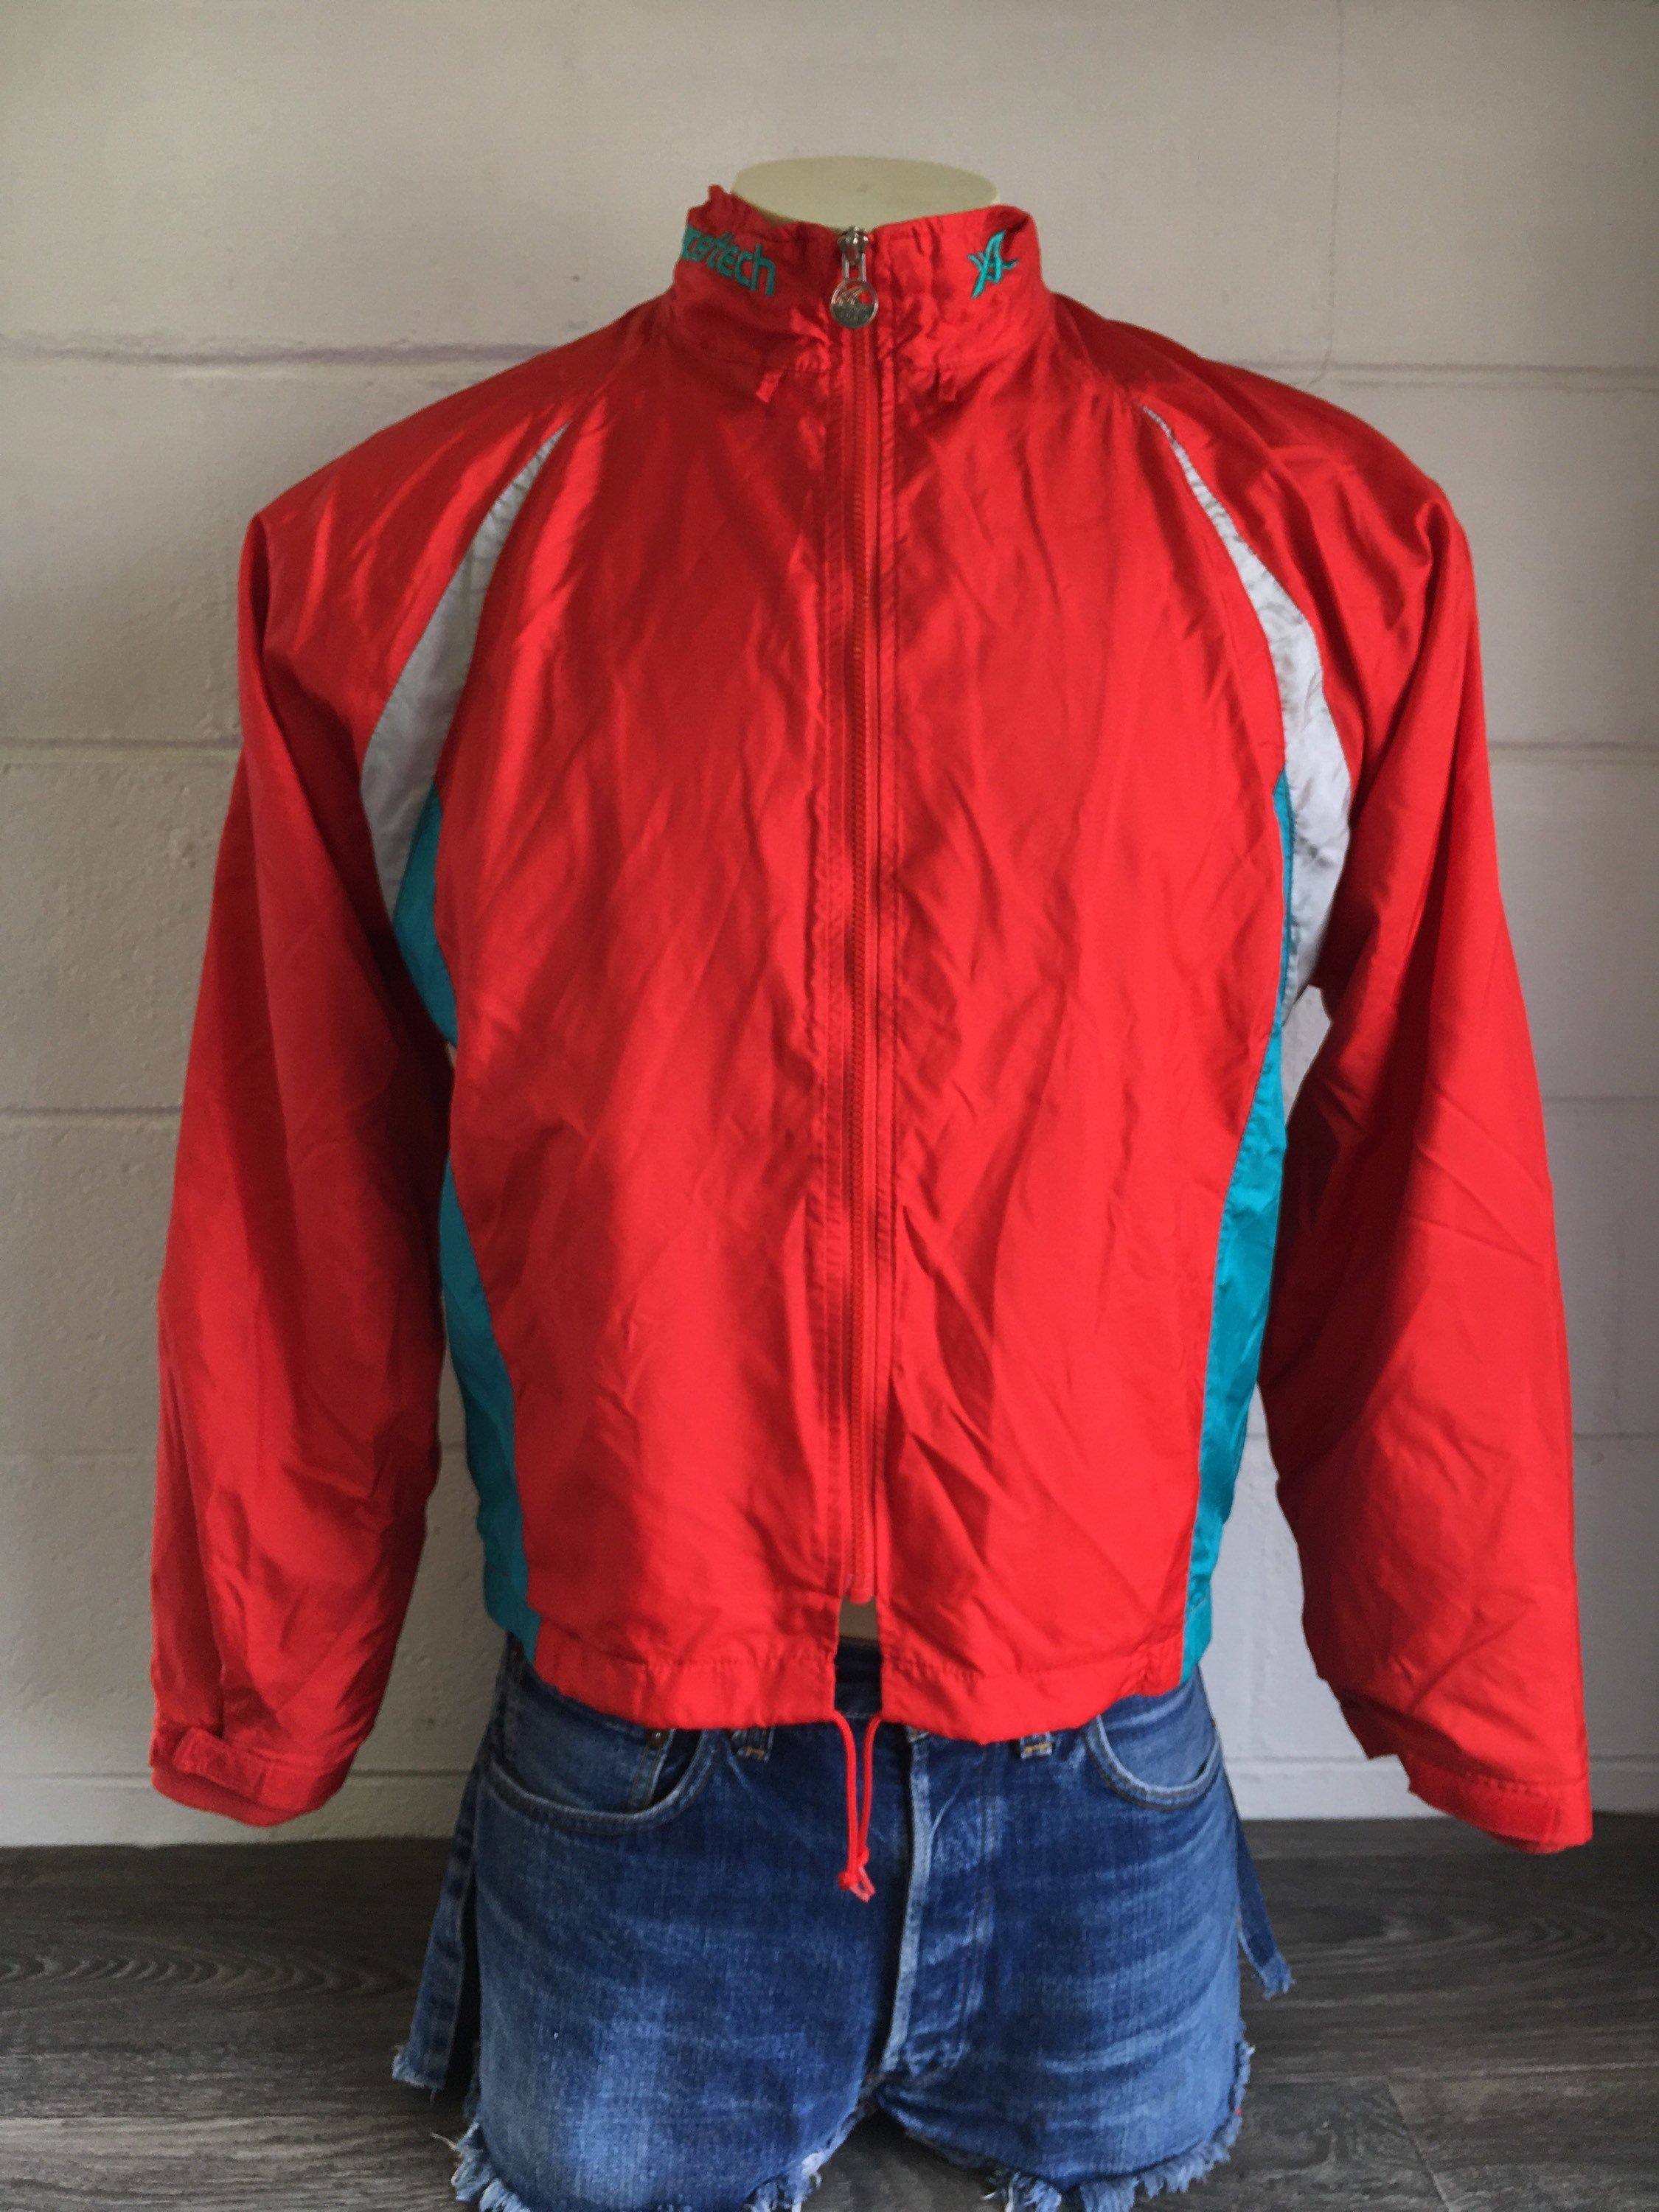 5b1d5b7431df ASICS Jacket WINDBREAKER 80 s Vintage EXCELTECH  Full Zip Warm Up Running  Track Reflective Red Color Block Excellent Condition! Large by  sweetVTGtshirt on ...